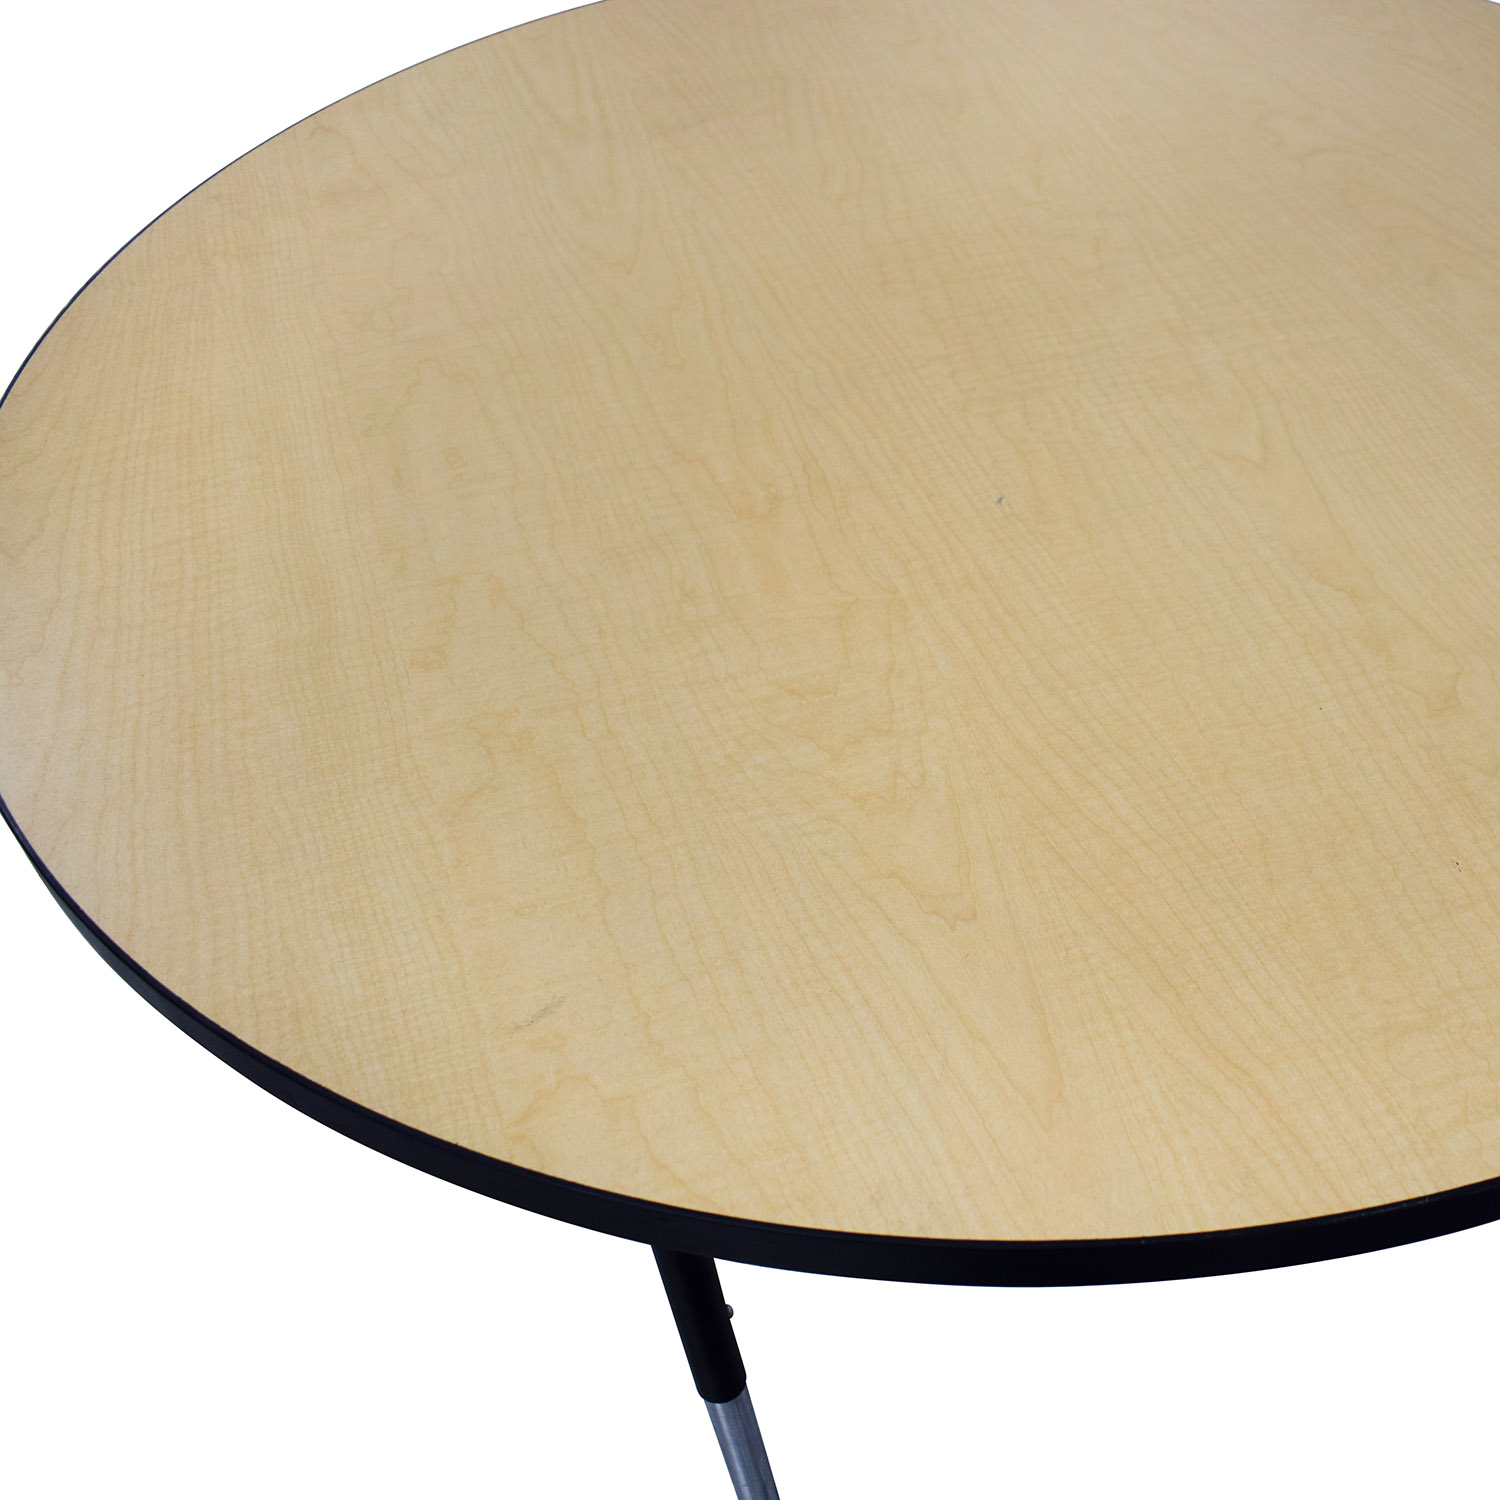 Round Activity Table dimensions